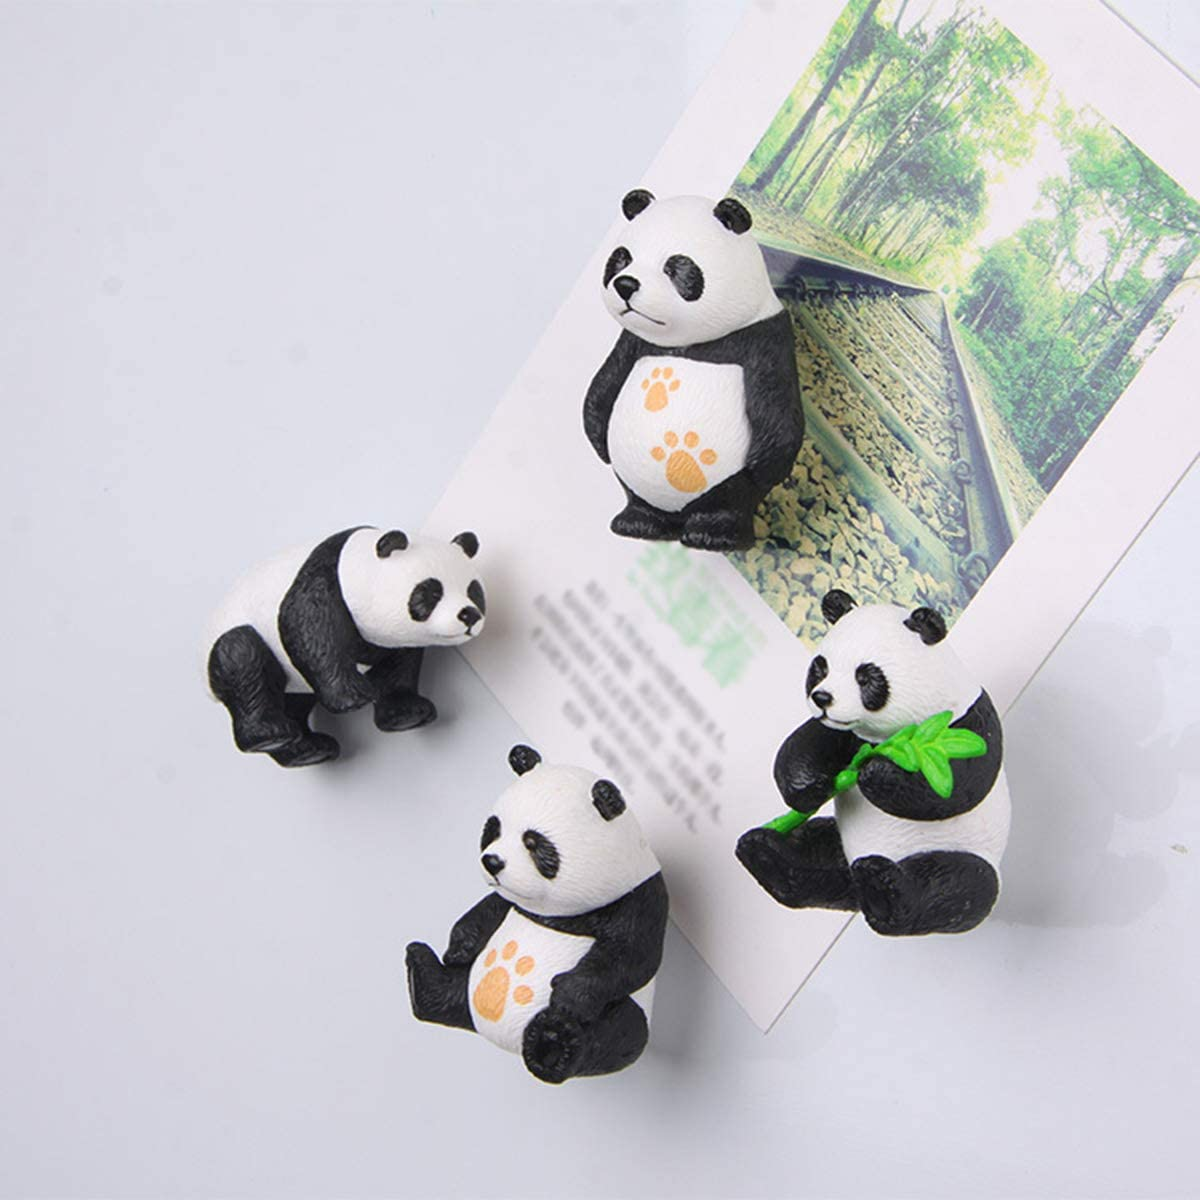 Decorative Refrigerator Magnets, Perfect Fridge Magnets for House Office Personal Use (4Pcs Pandas 3)